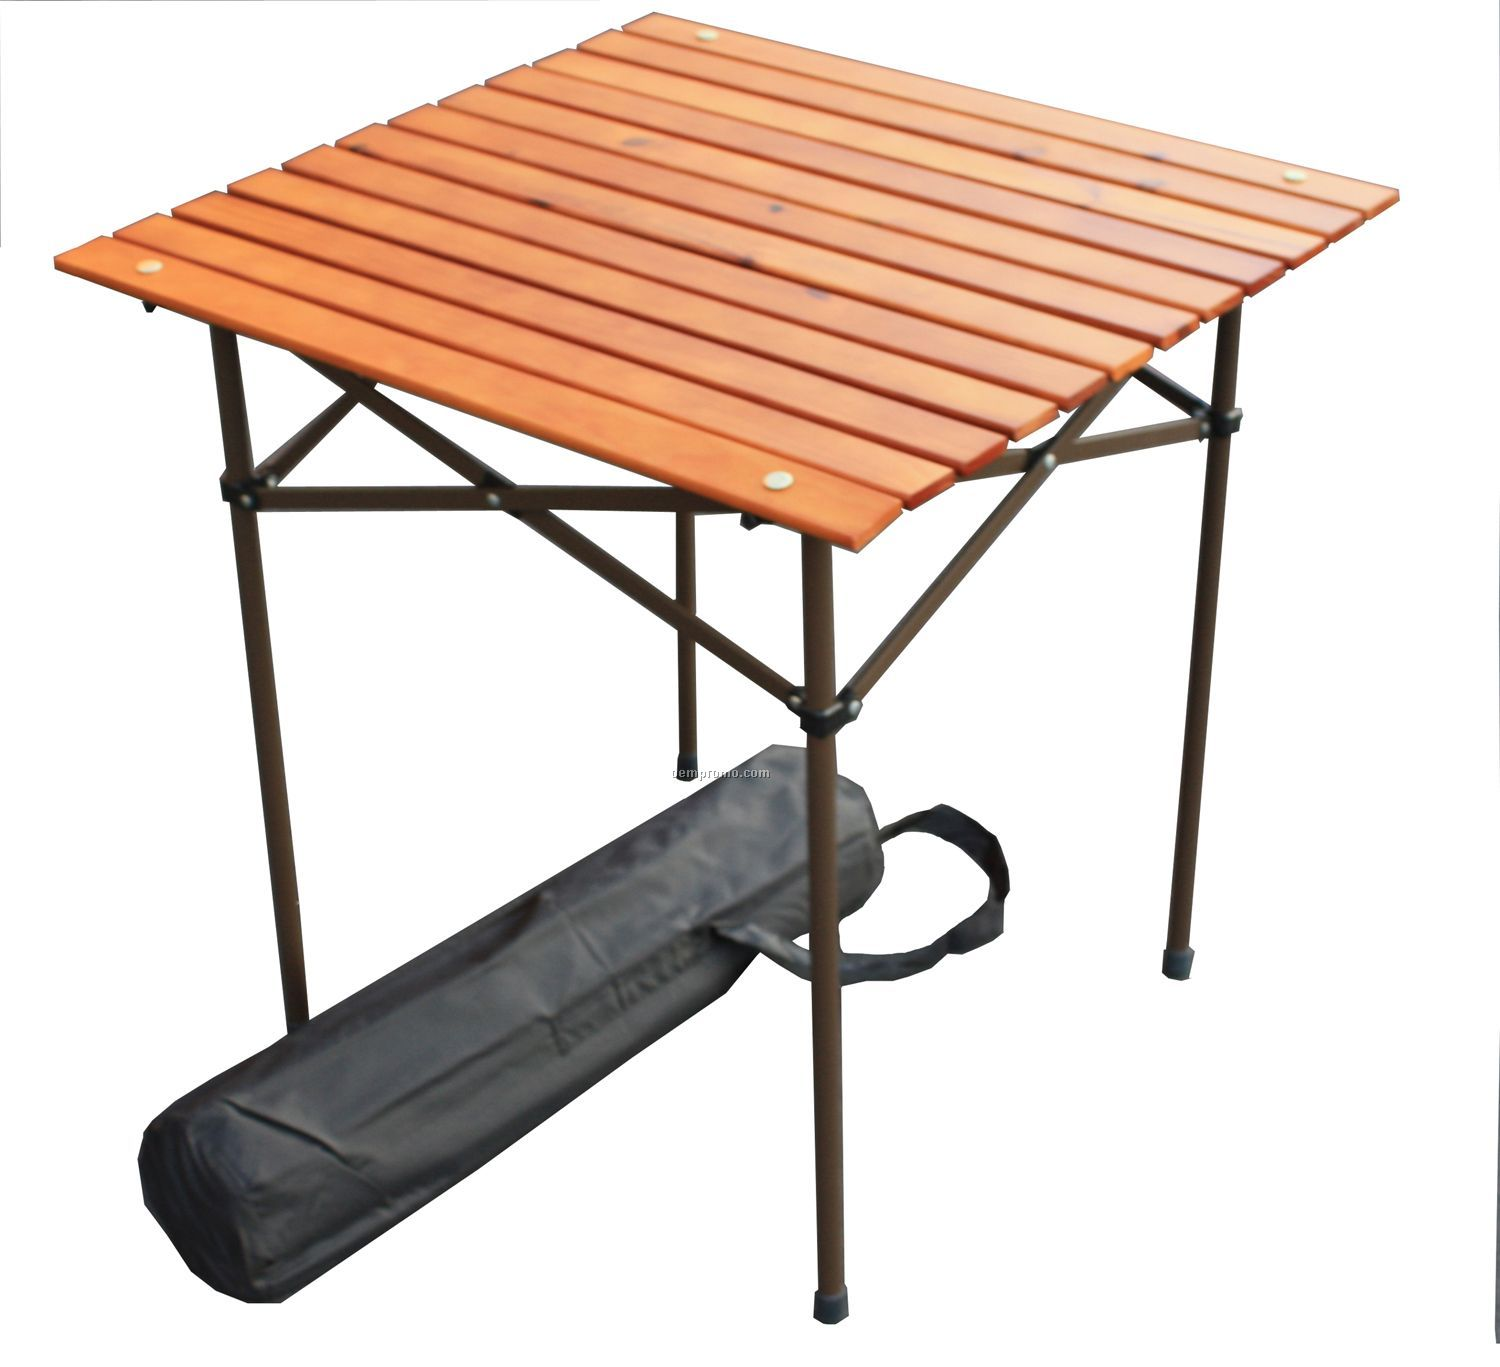 Wood Portable Table In A Bag. Wood Portable Table In A Bag  27 X27 X27   China Wholesale Wood